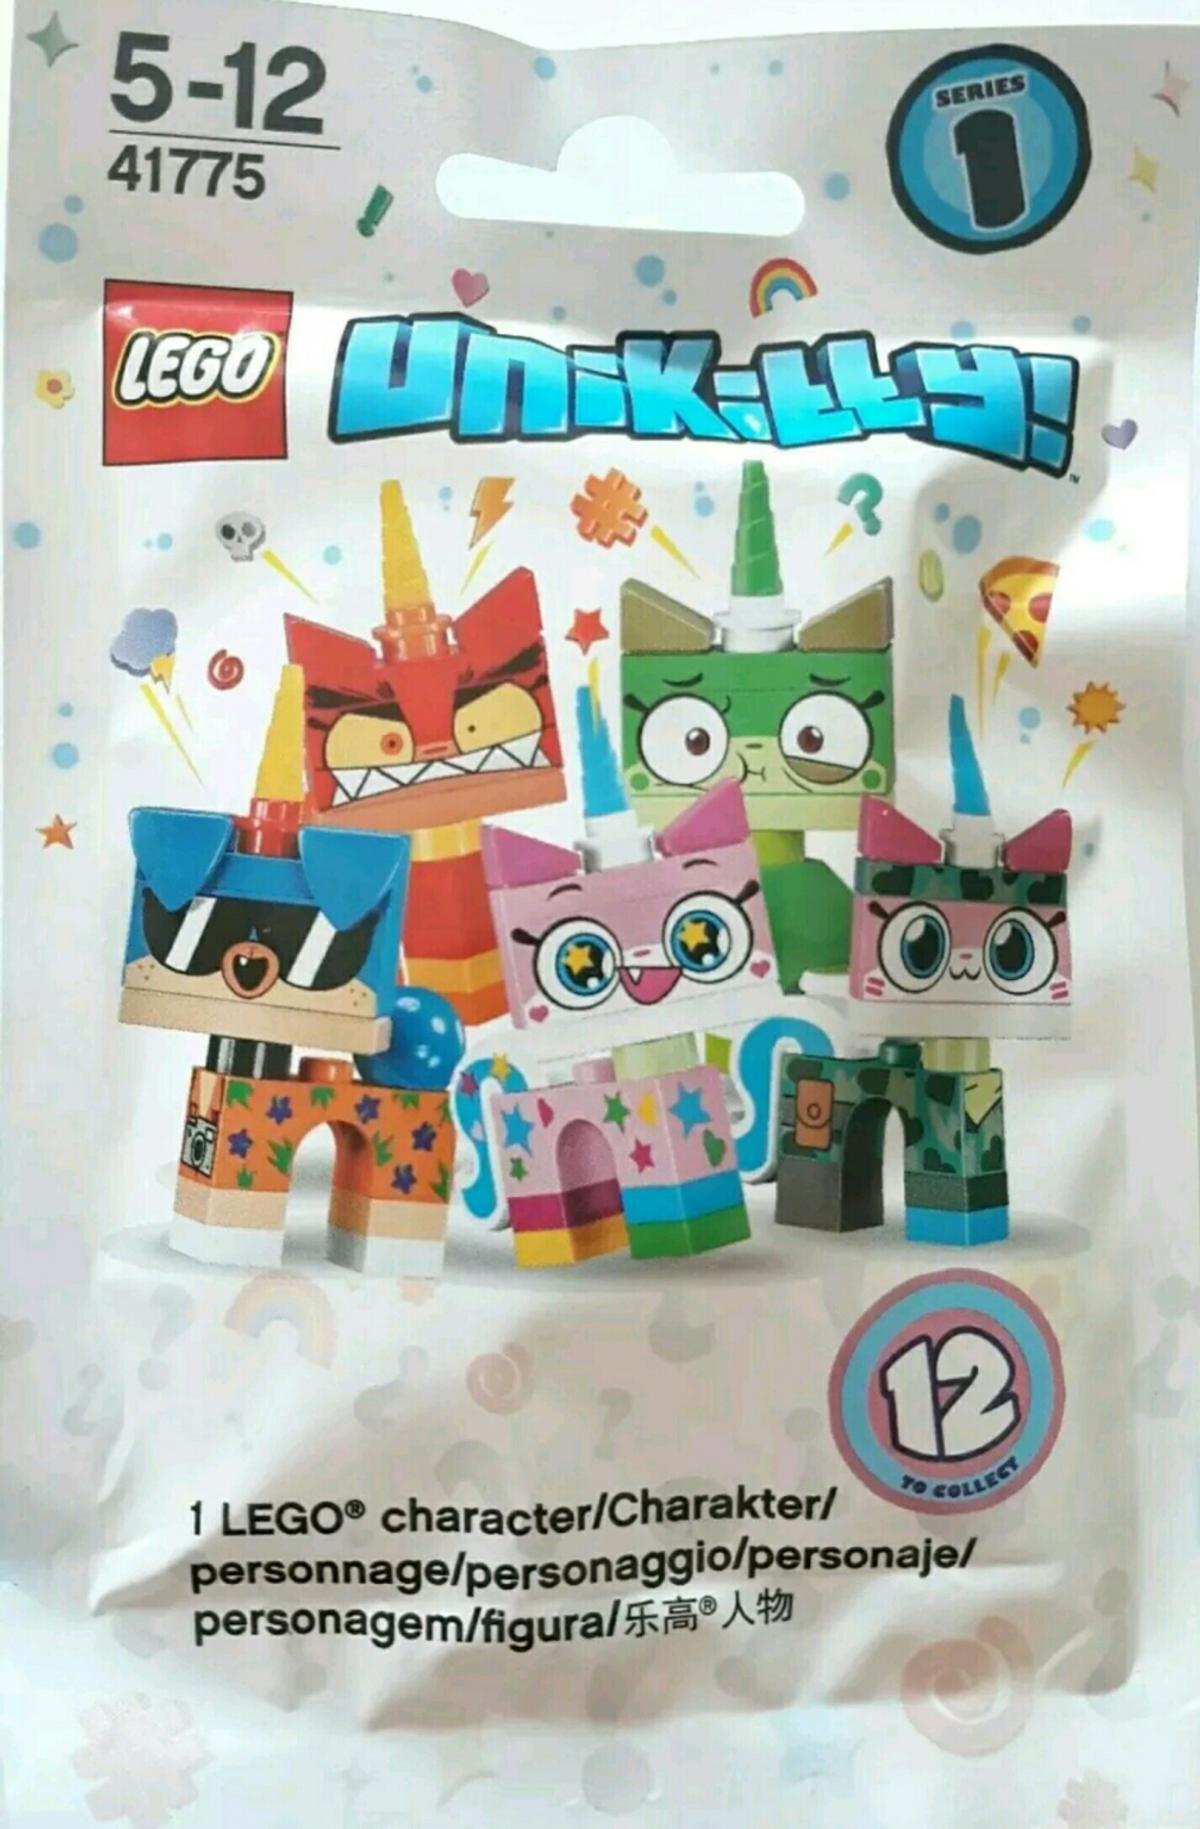 SIX SEALED Collectible character polybags series 1 LEGO 41775 Unikitty 6